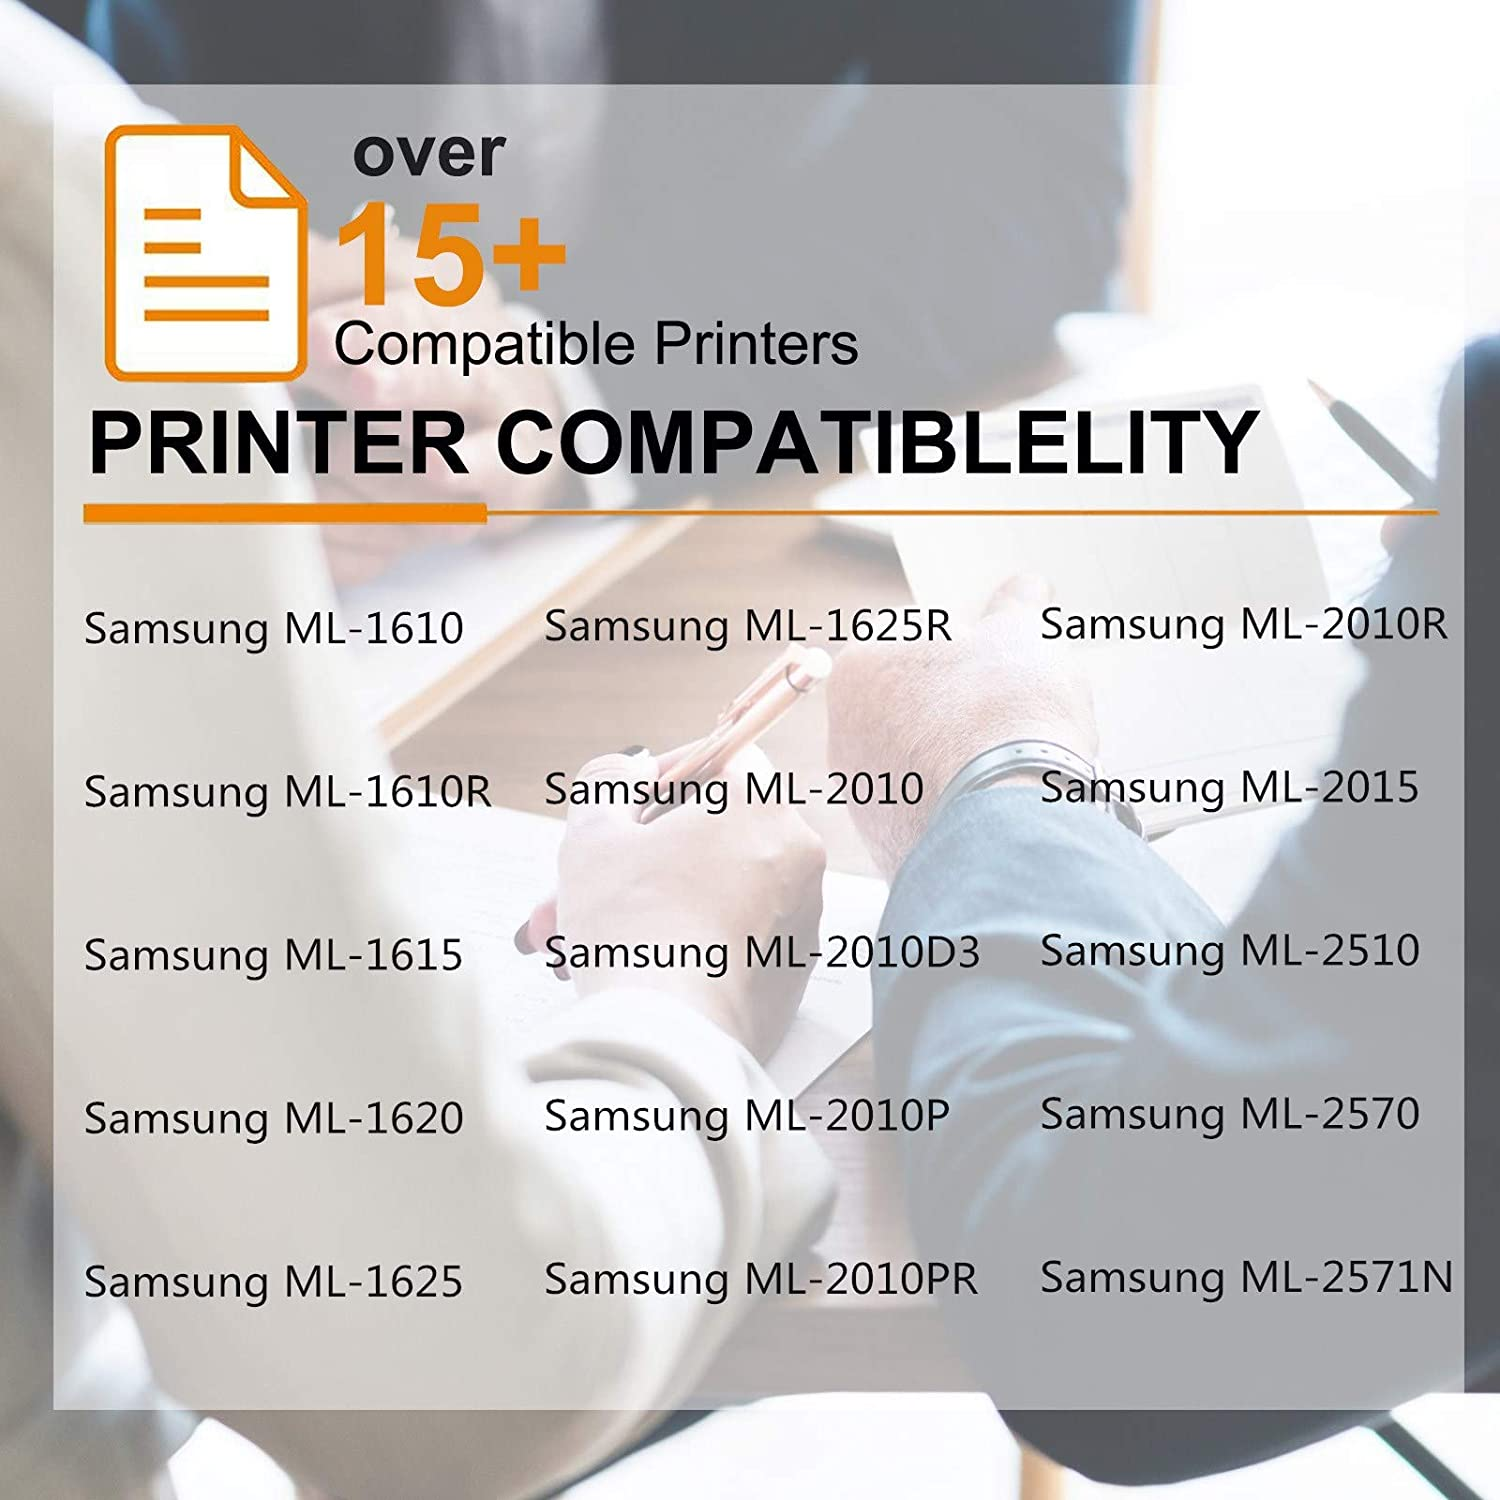 Black, 1-Pack GREENCYCLE 3000 Pages per Toner Cartridge Replacement Compatible for Samsung ML2010 ML2010D3 Used in ML-2010 ML-2010D3 ML-2010P ML-2010PR ML-2010R ML-2015 ML-2510 ML-2570 ML-2571N